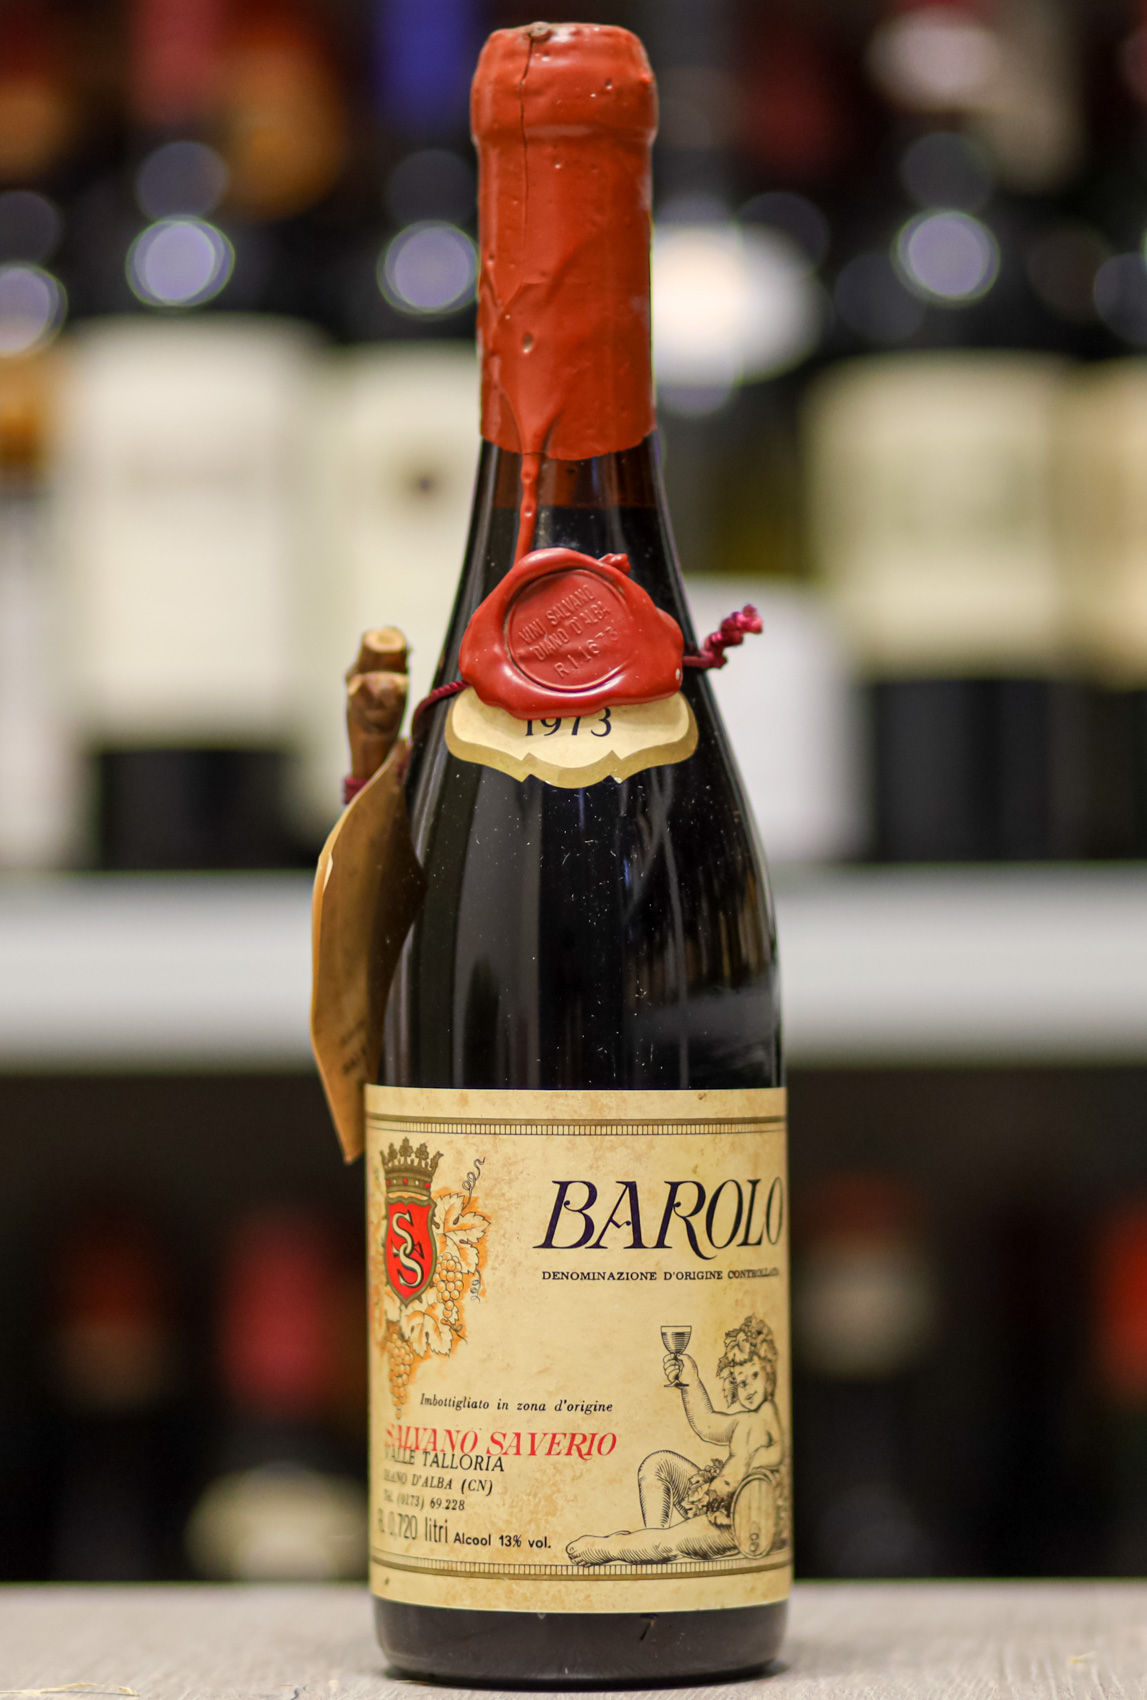 Вино Barolo Salvano Saverio 1973 года урожая